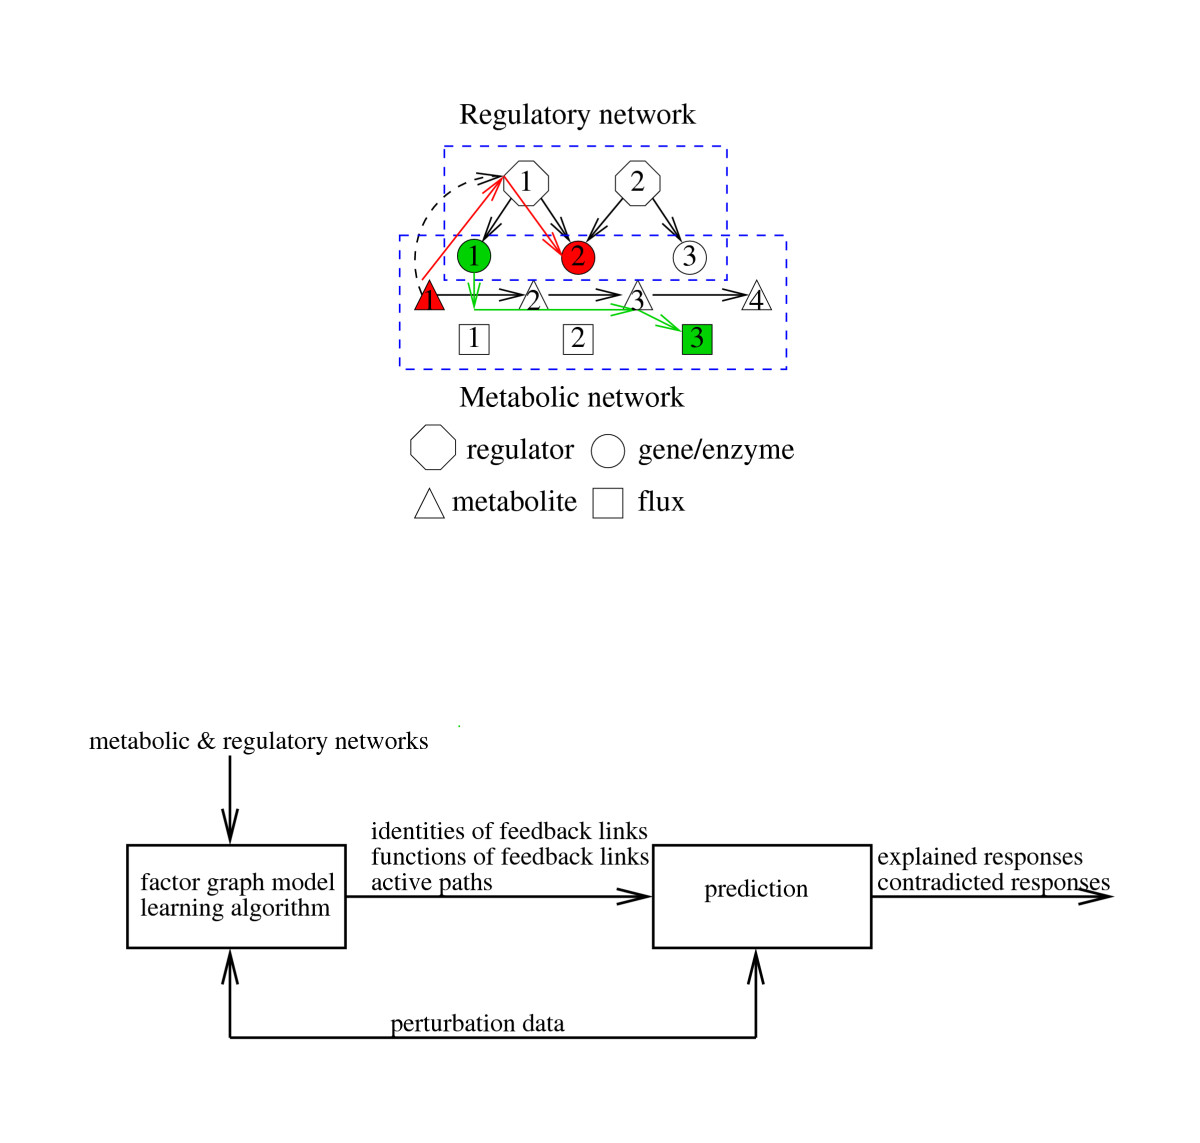 http://static-content.springer.com/image/art%3A10.1186%2F1471-2105-7-332/MediaObjects/12859_2005_Article_1071_Fig1_HTML.jpg